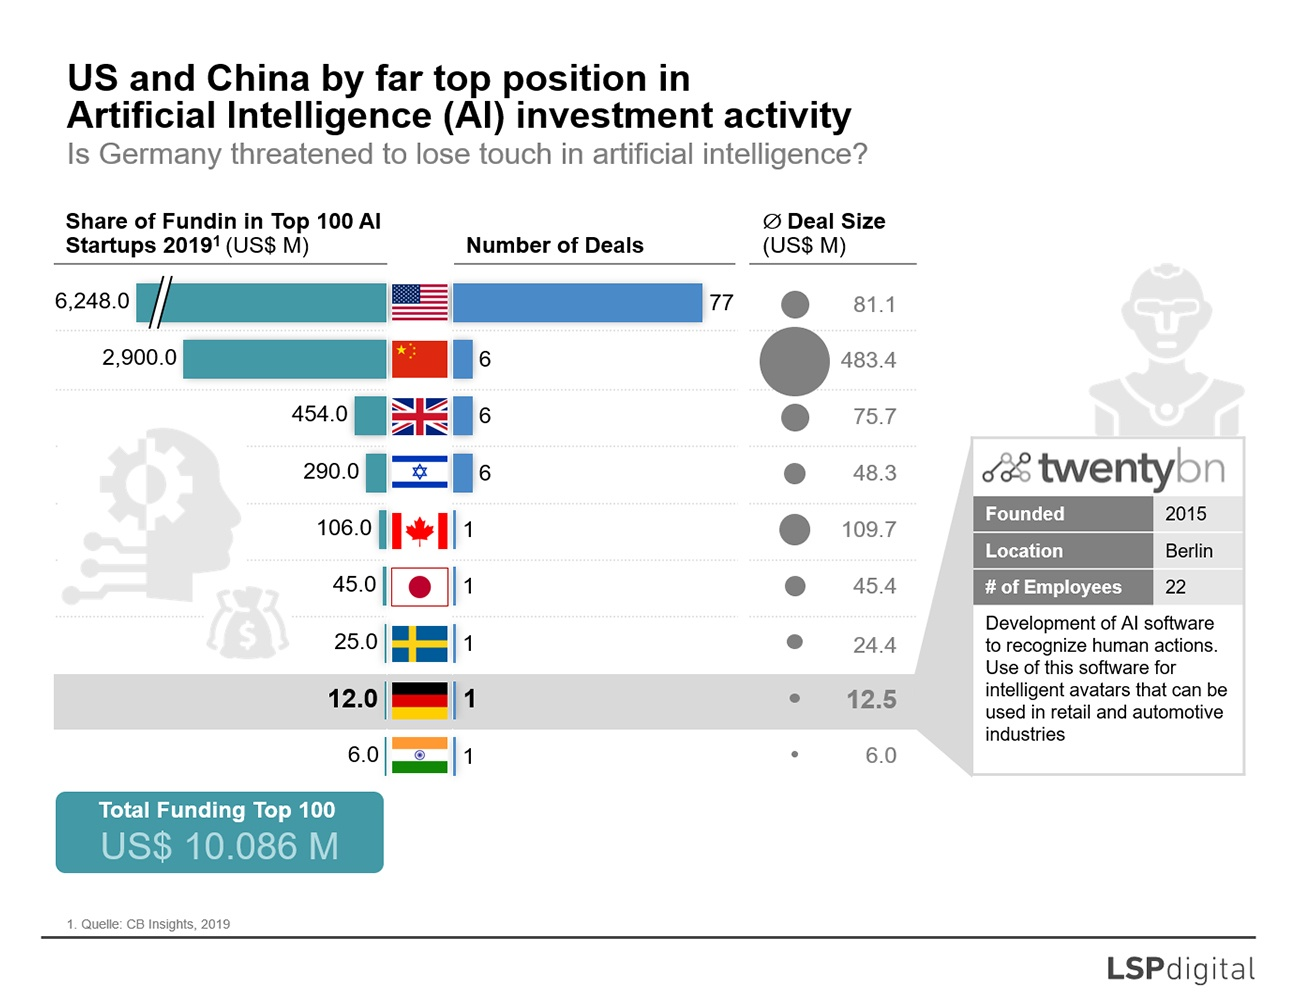 US and China by far top position in AI investment activity